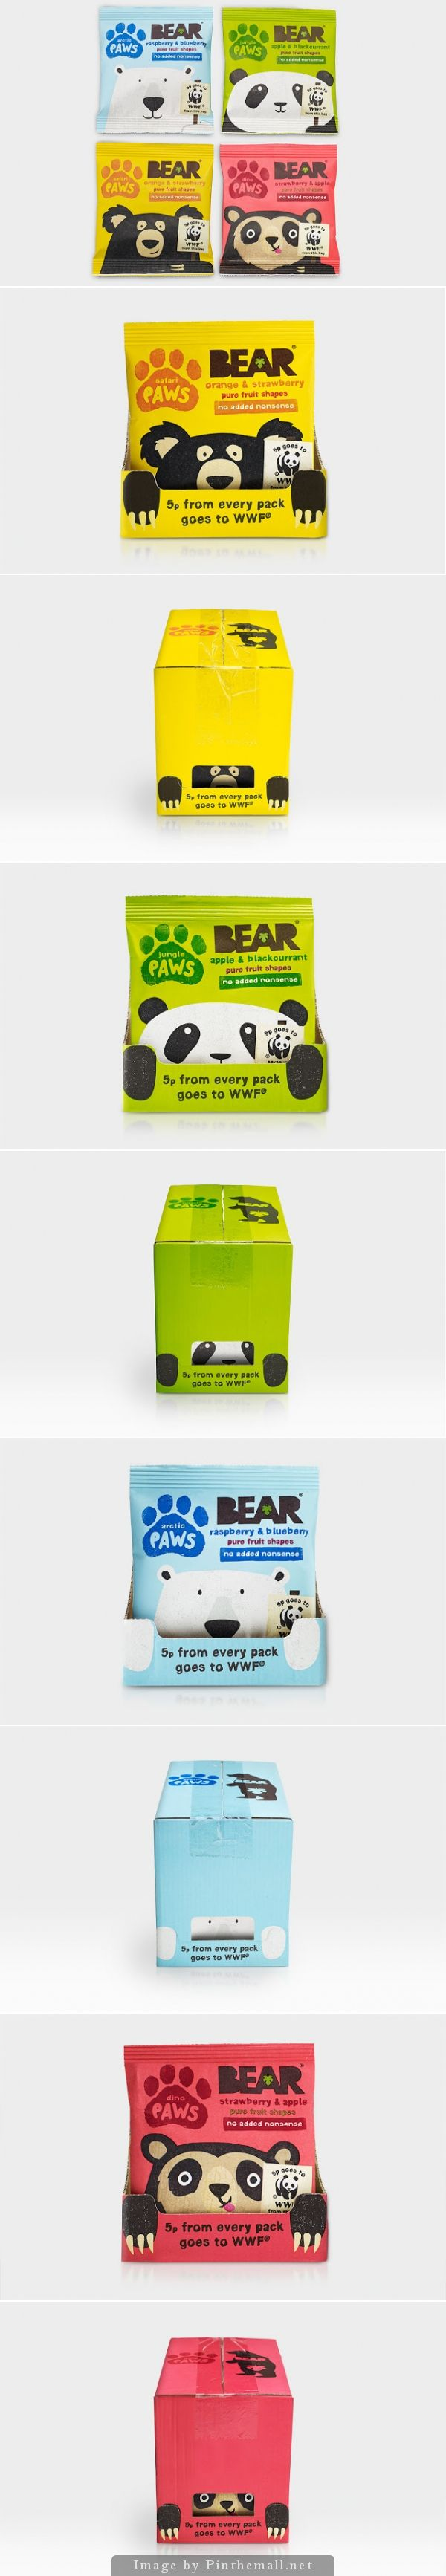 BEAR Paws #WWF #packaging by B&B- http://www.packagingoftheworld.com/2014/11/bear-paws.html